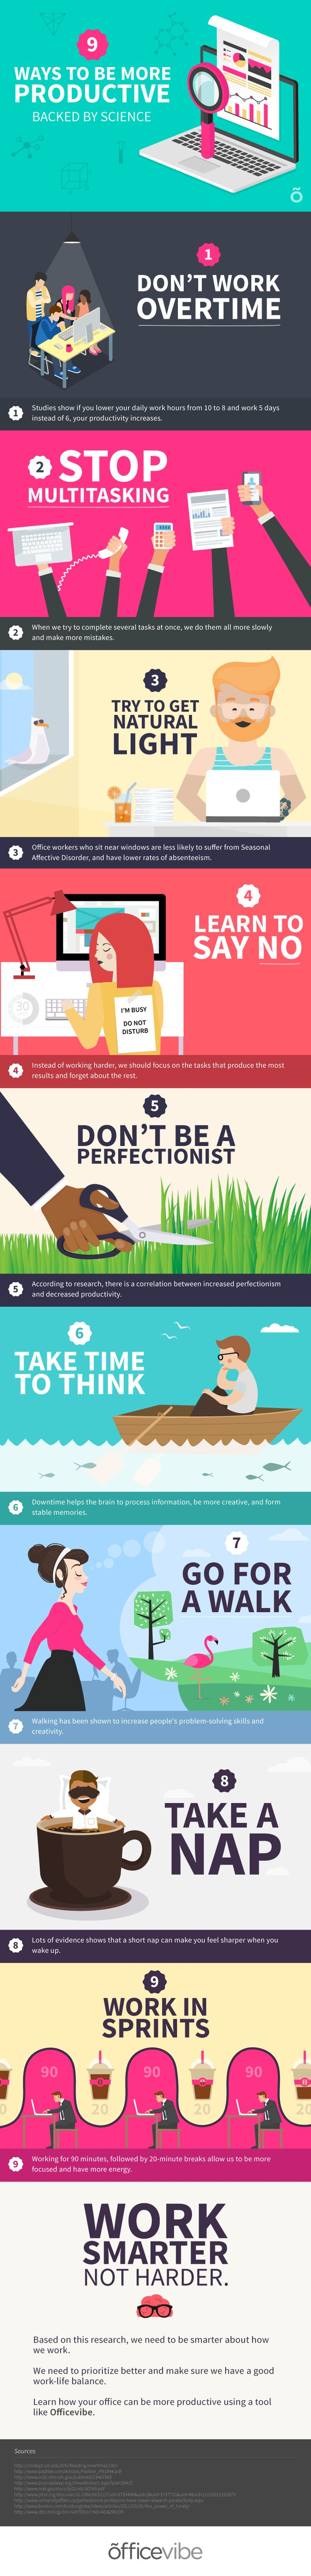 J'aime les couleurs puissantes, le text est gras et court, et les illustrations sont amicale - http://elearninginfographics.com/increase-productivity-work-infographic/